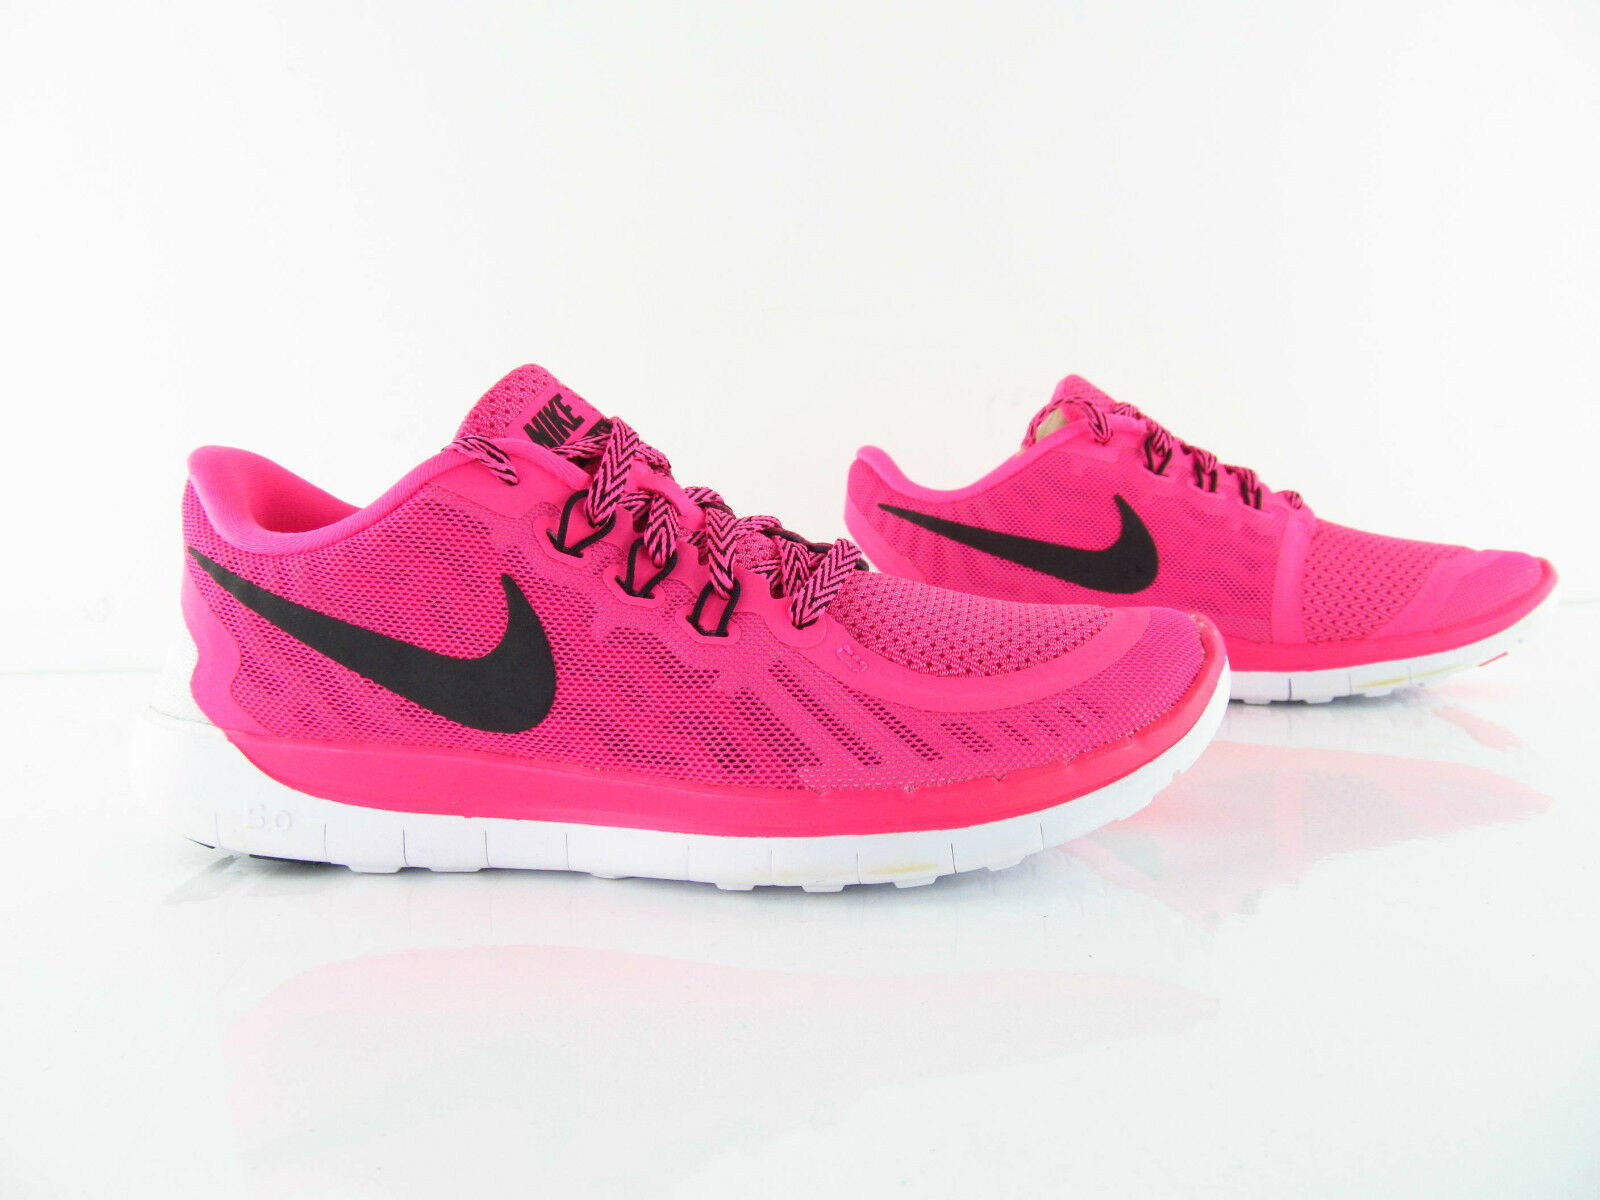 Nike Free 5.0 Pink Pow WEISS Barefoot Running New Eur_ 37.5